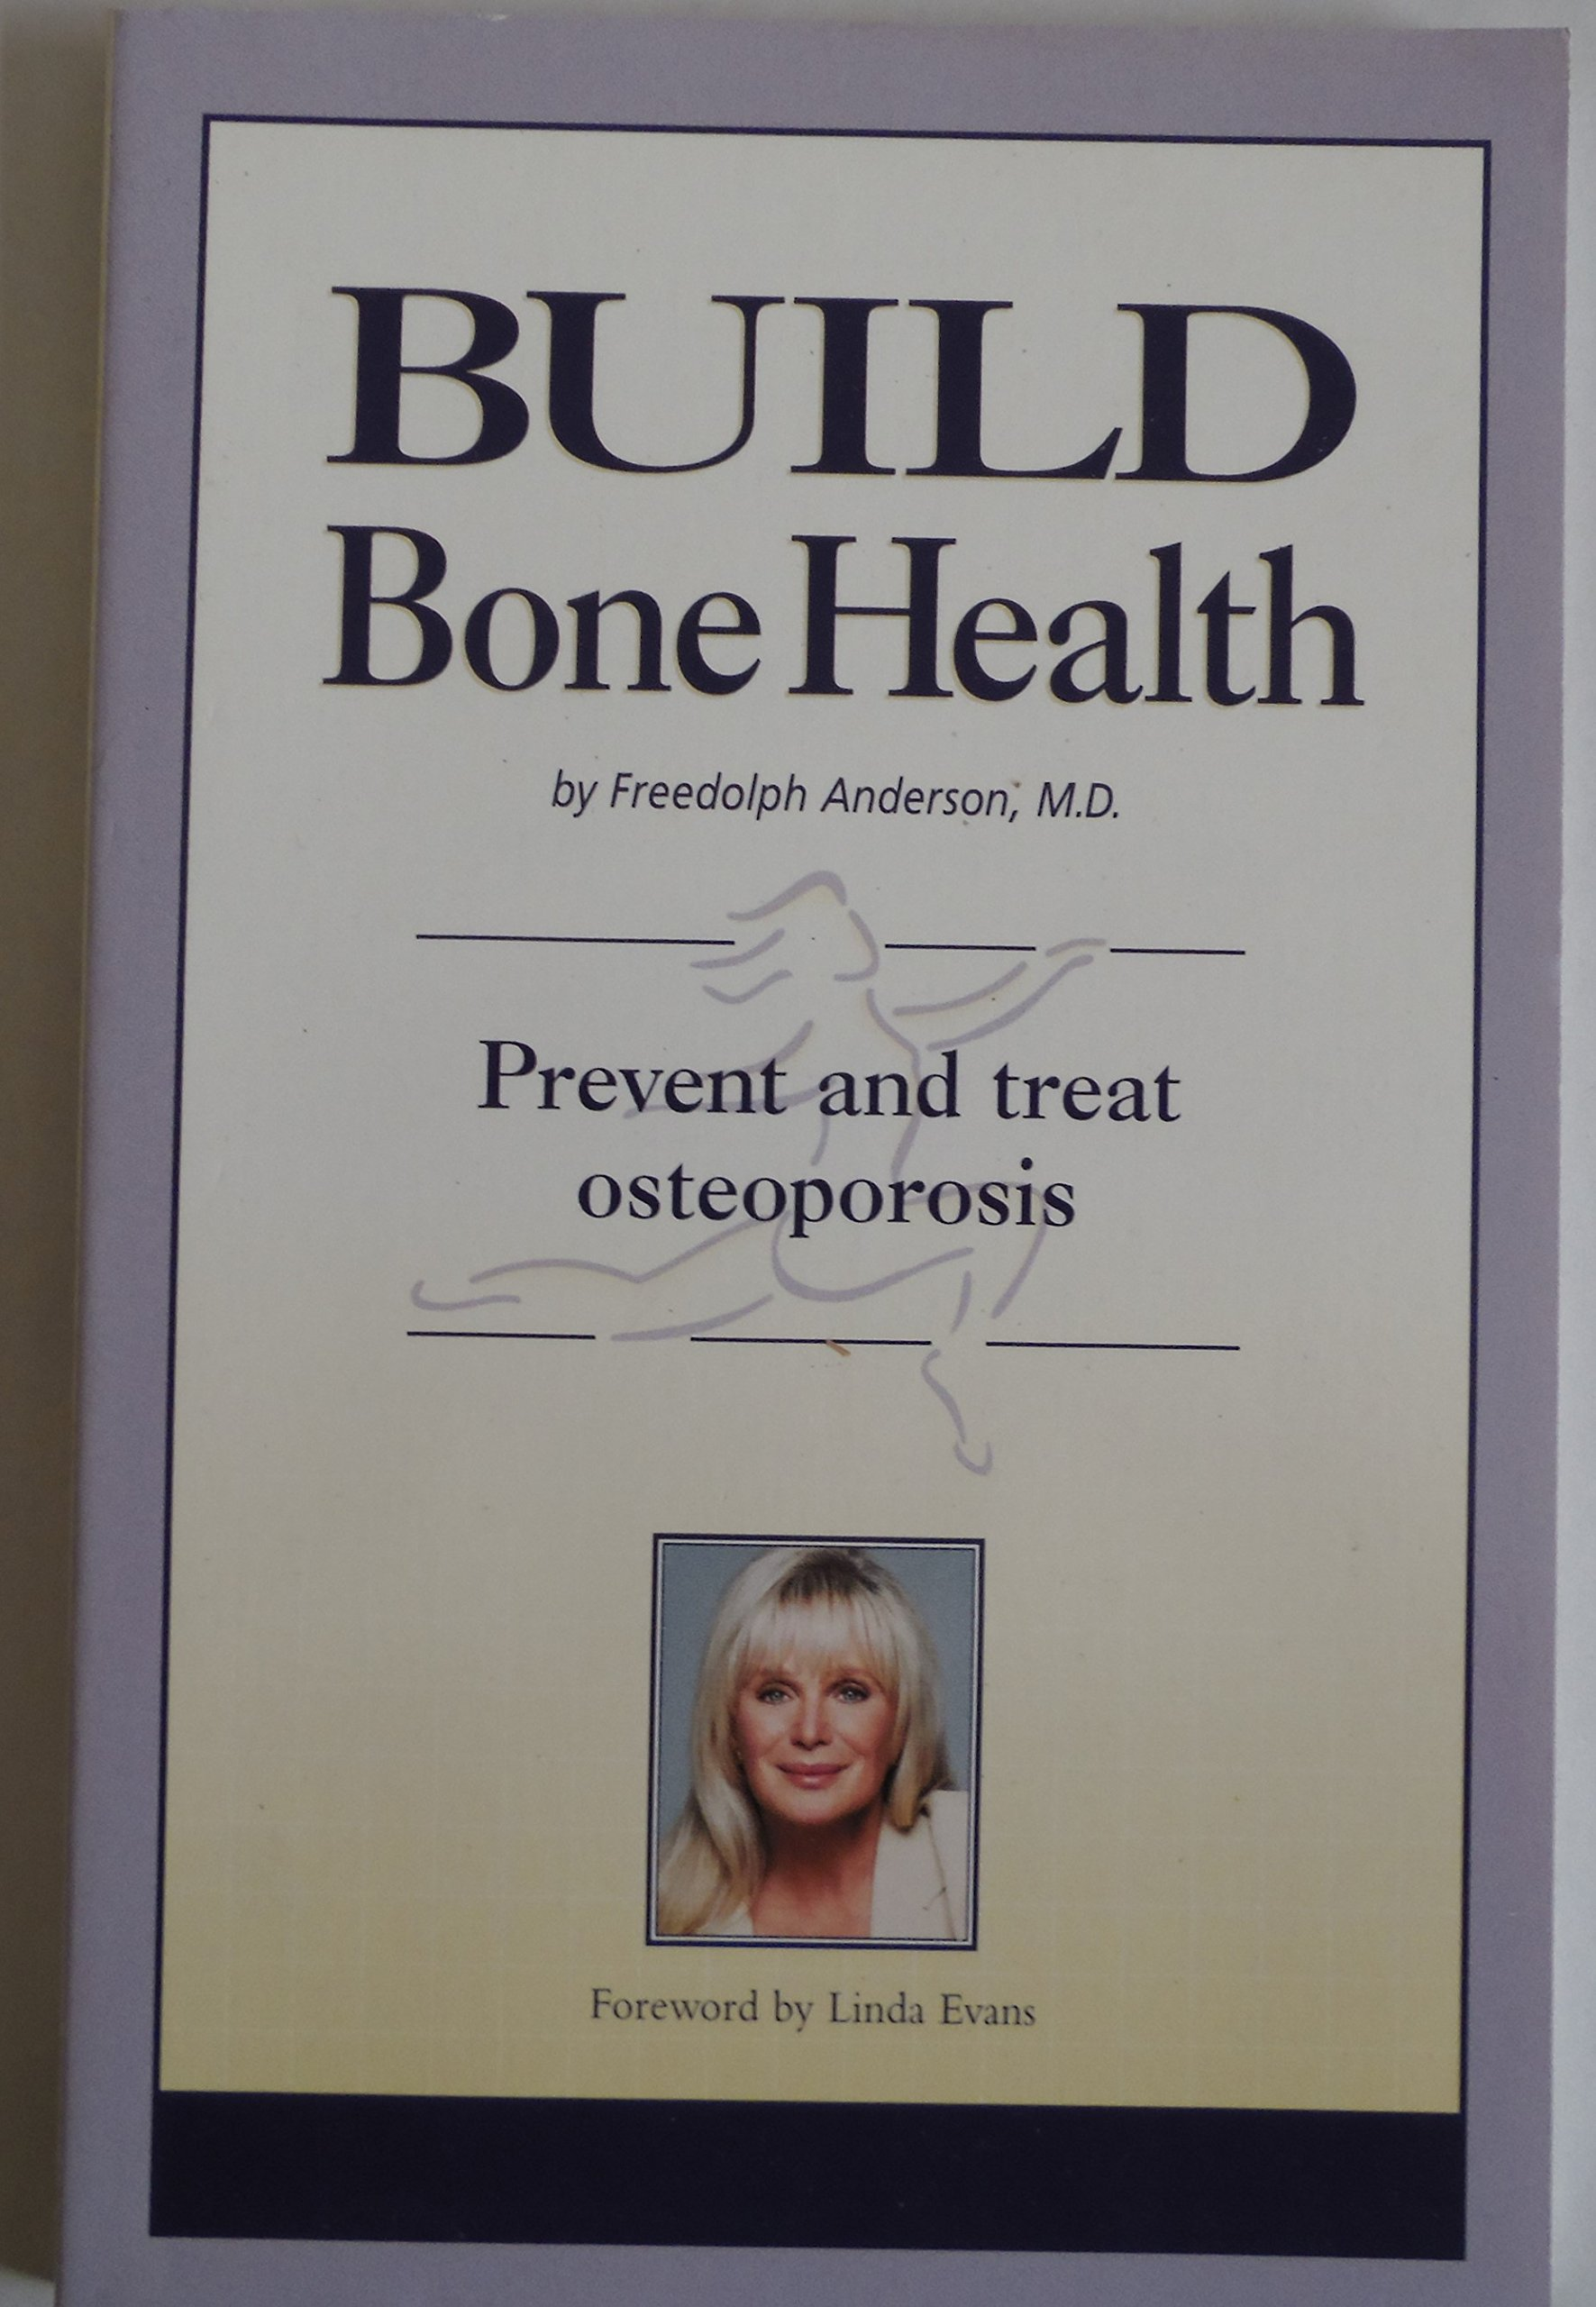 Build Bone Health: Prevent and Treat Osteoporosis Paperback – May 1, 1999 Freedolph Anderson Linda Evans Impakt Communications 1890694223